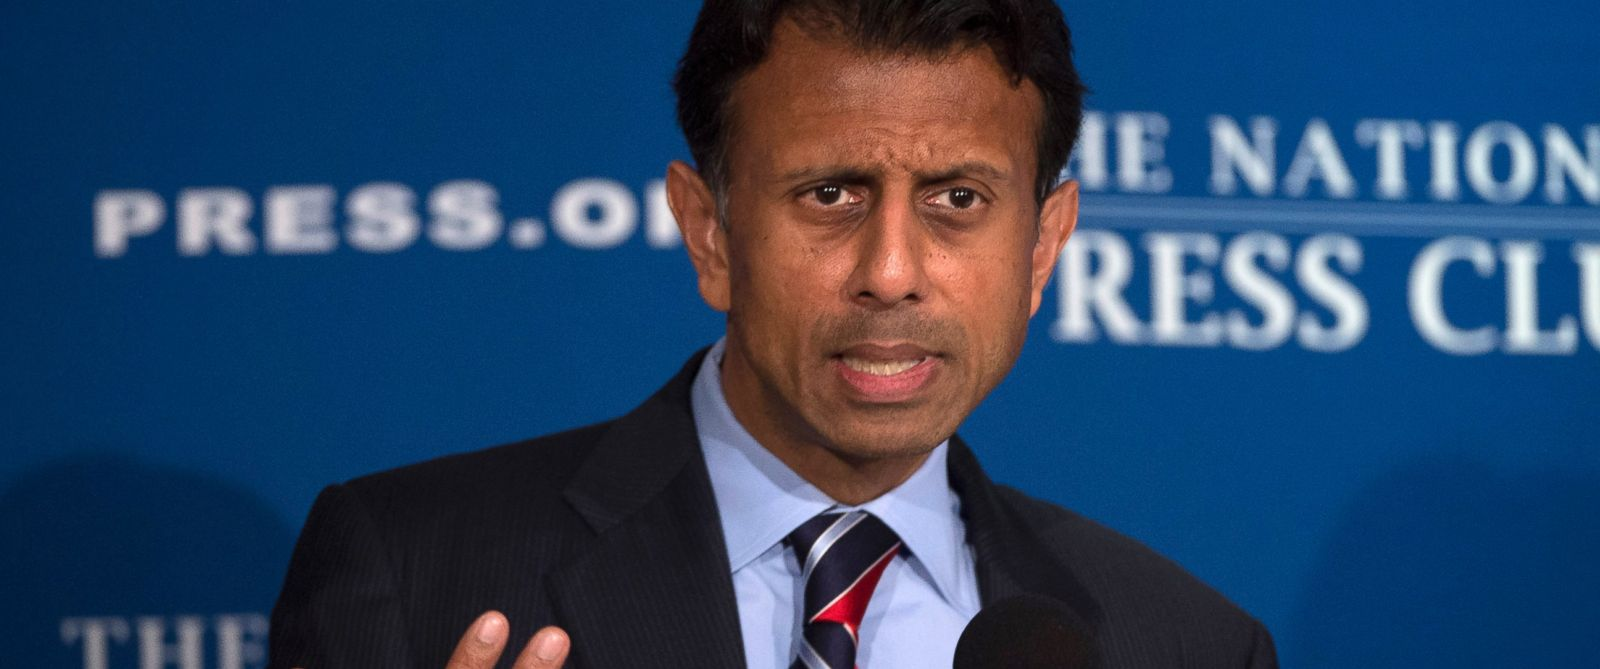 PHOTO: Republican presidential candidate, Louisiana Gov. Bobby Jindal speaks at the National Press Club in Washington, Sept. 10, 2015.